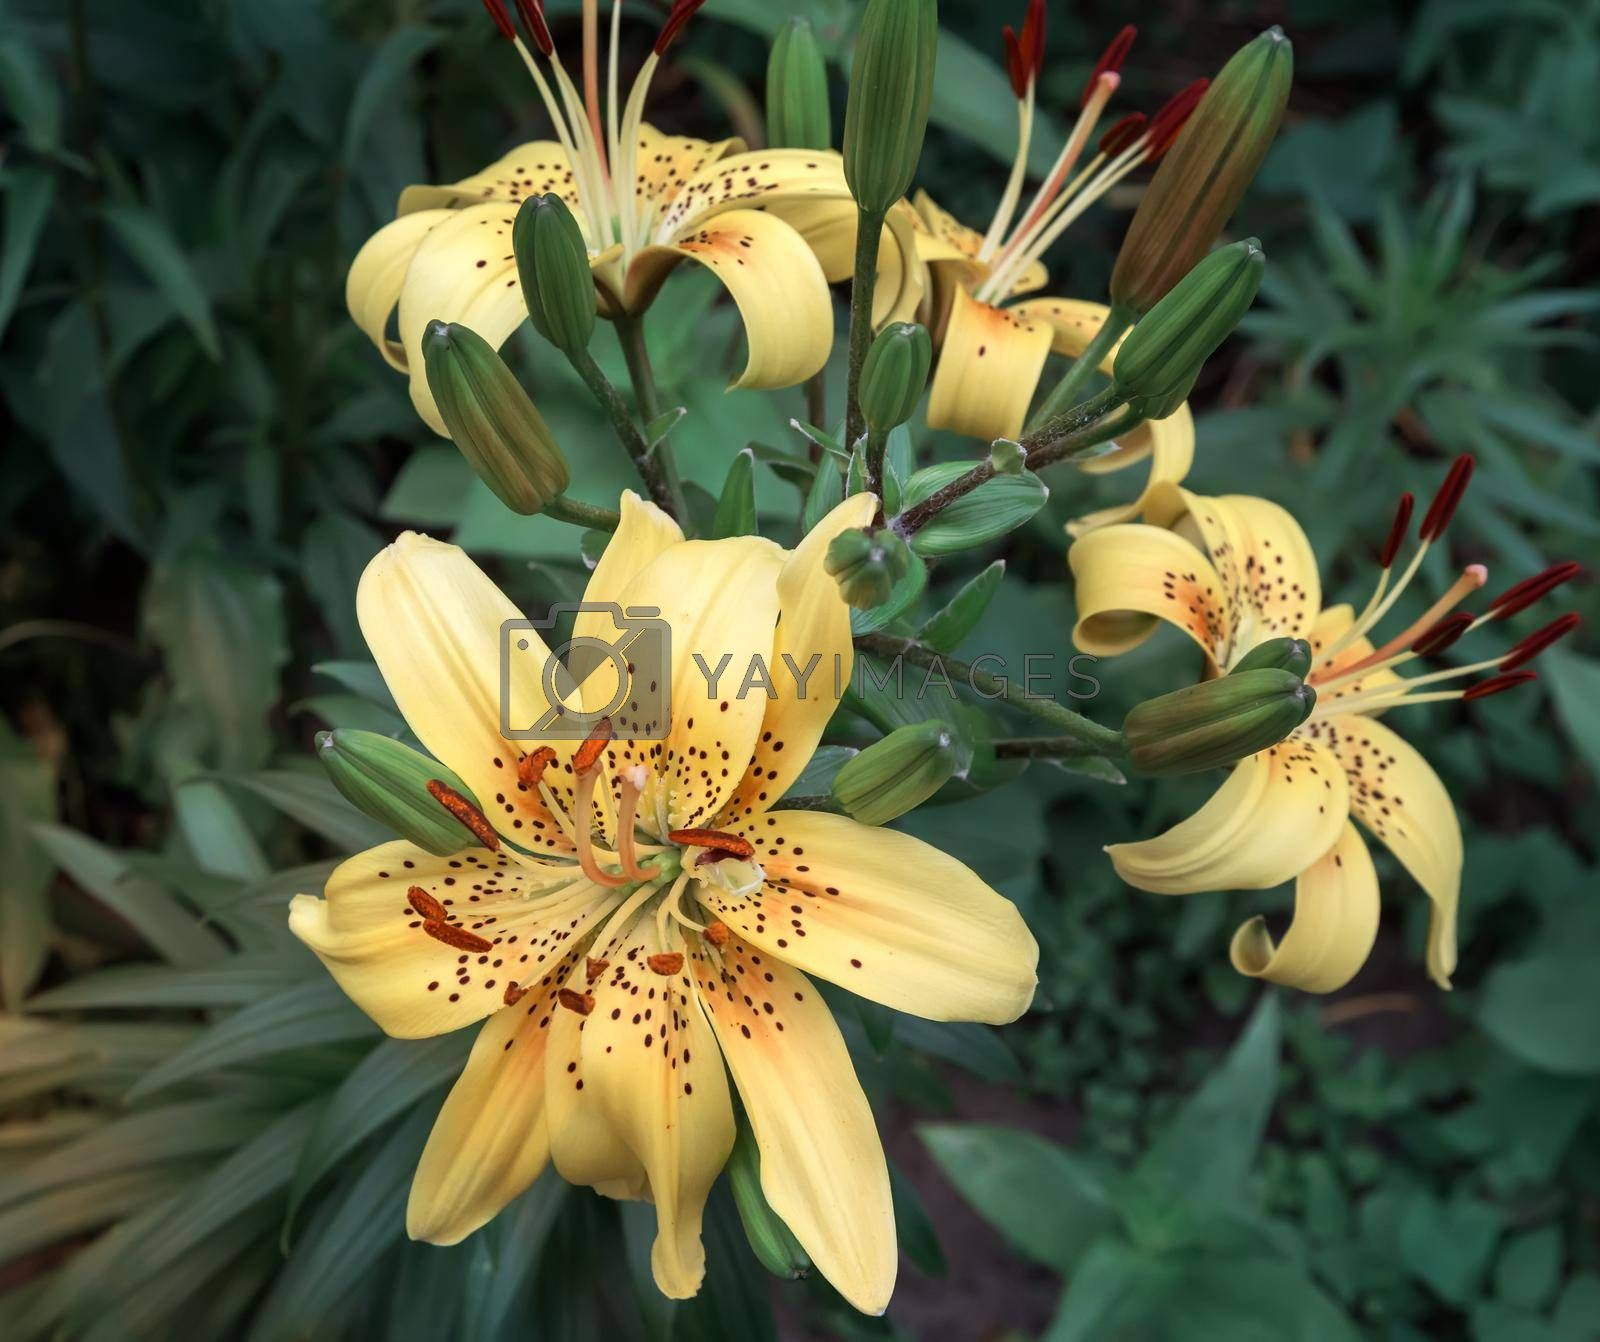 Beautiful yellow Lily flowers on green leaves background in garden. Presented close-up.